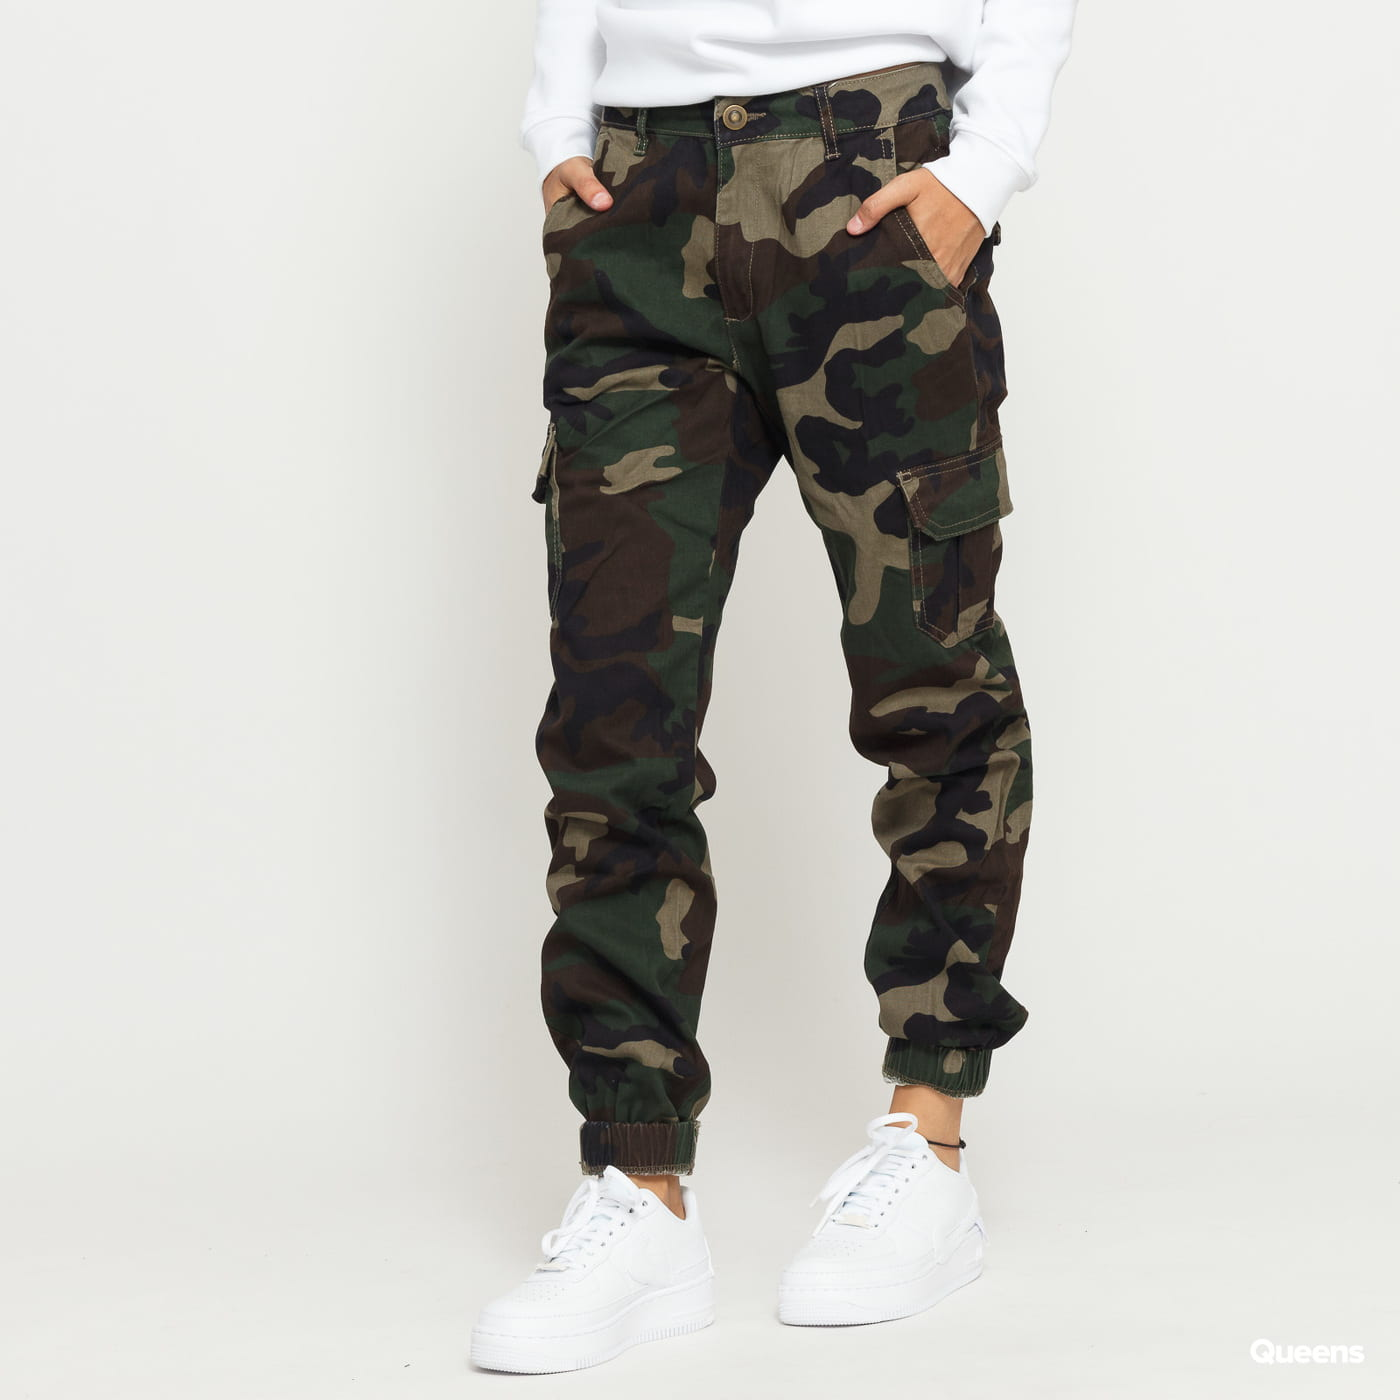 Urban Classics Ladies High Waist Camo Cargo Pants camo green